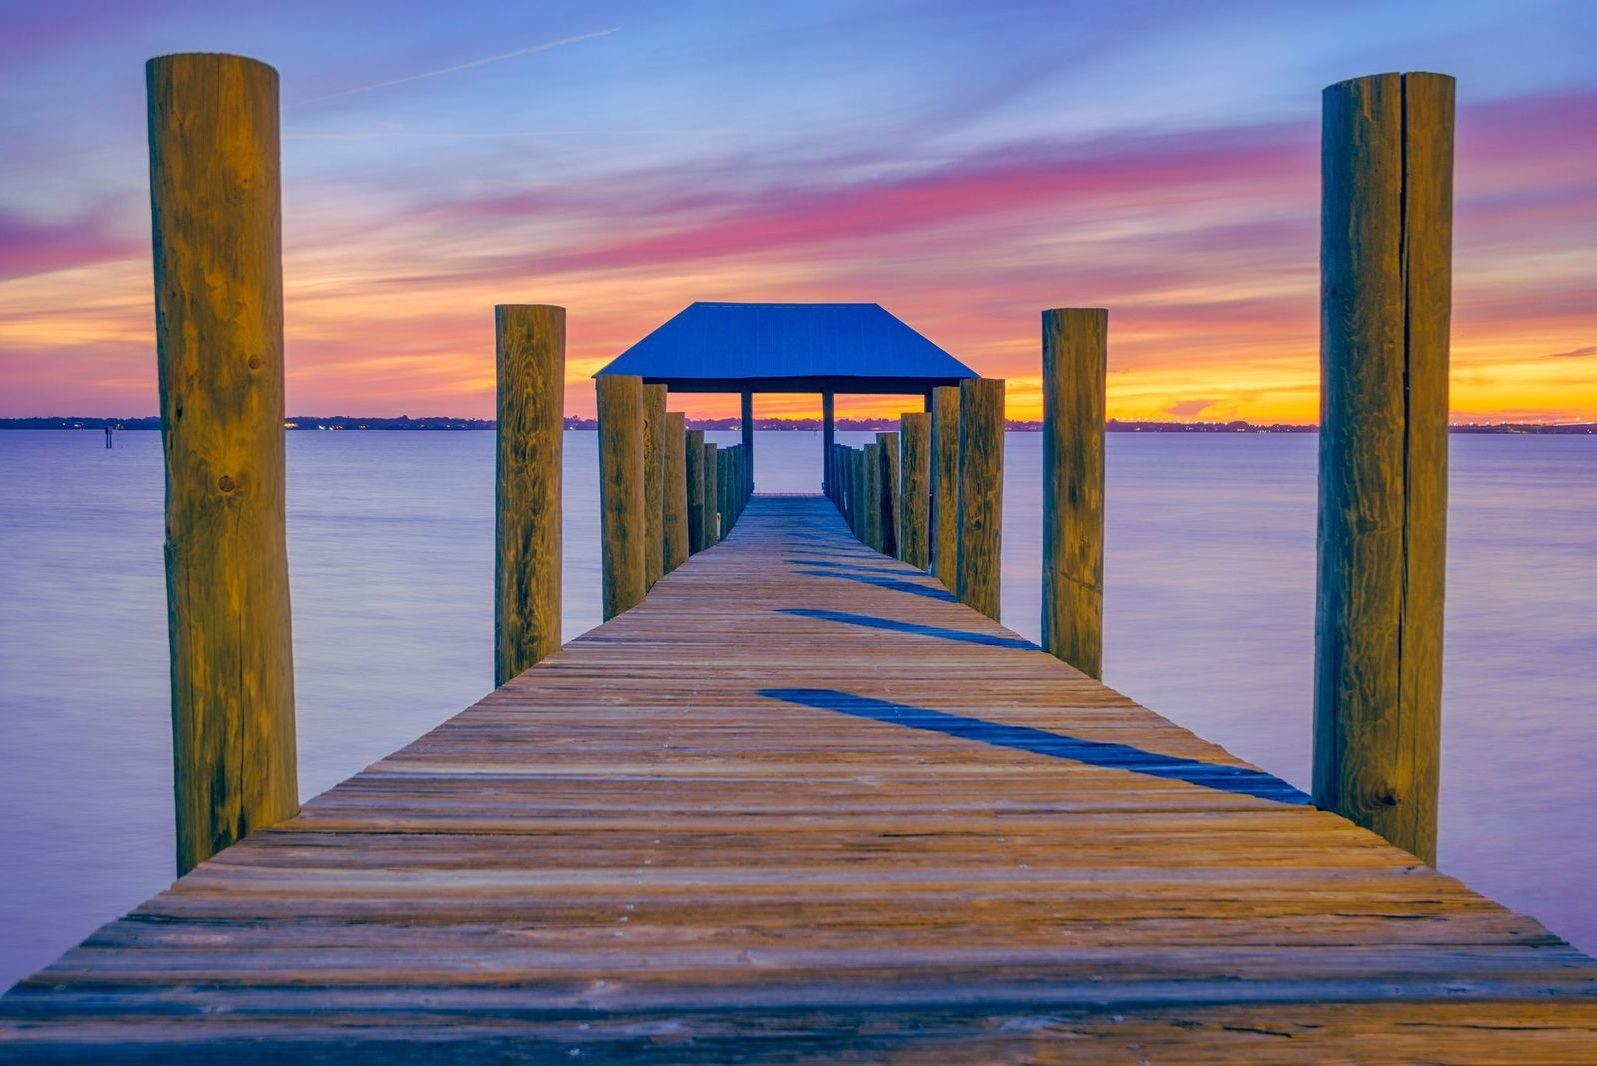 A sunset shot from a fishing pier on Hutchinson Island, one of the best summer fishing destinations in Martin County, Florida, with a refuge house at the end of the pier